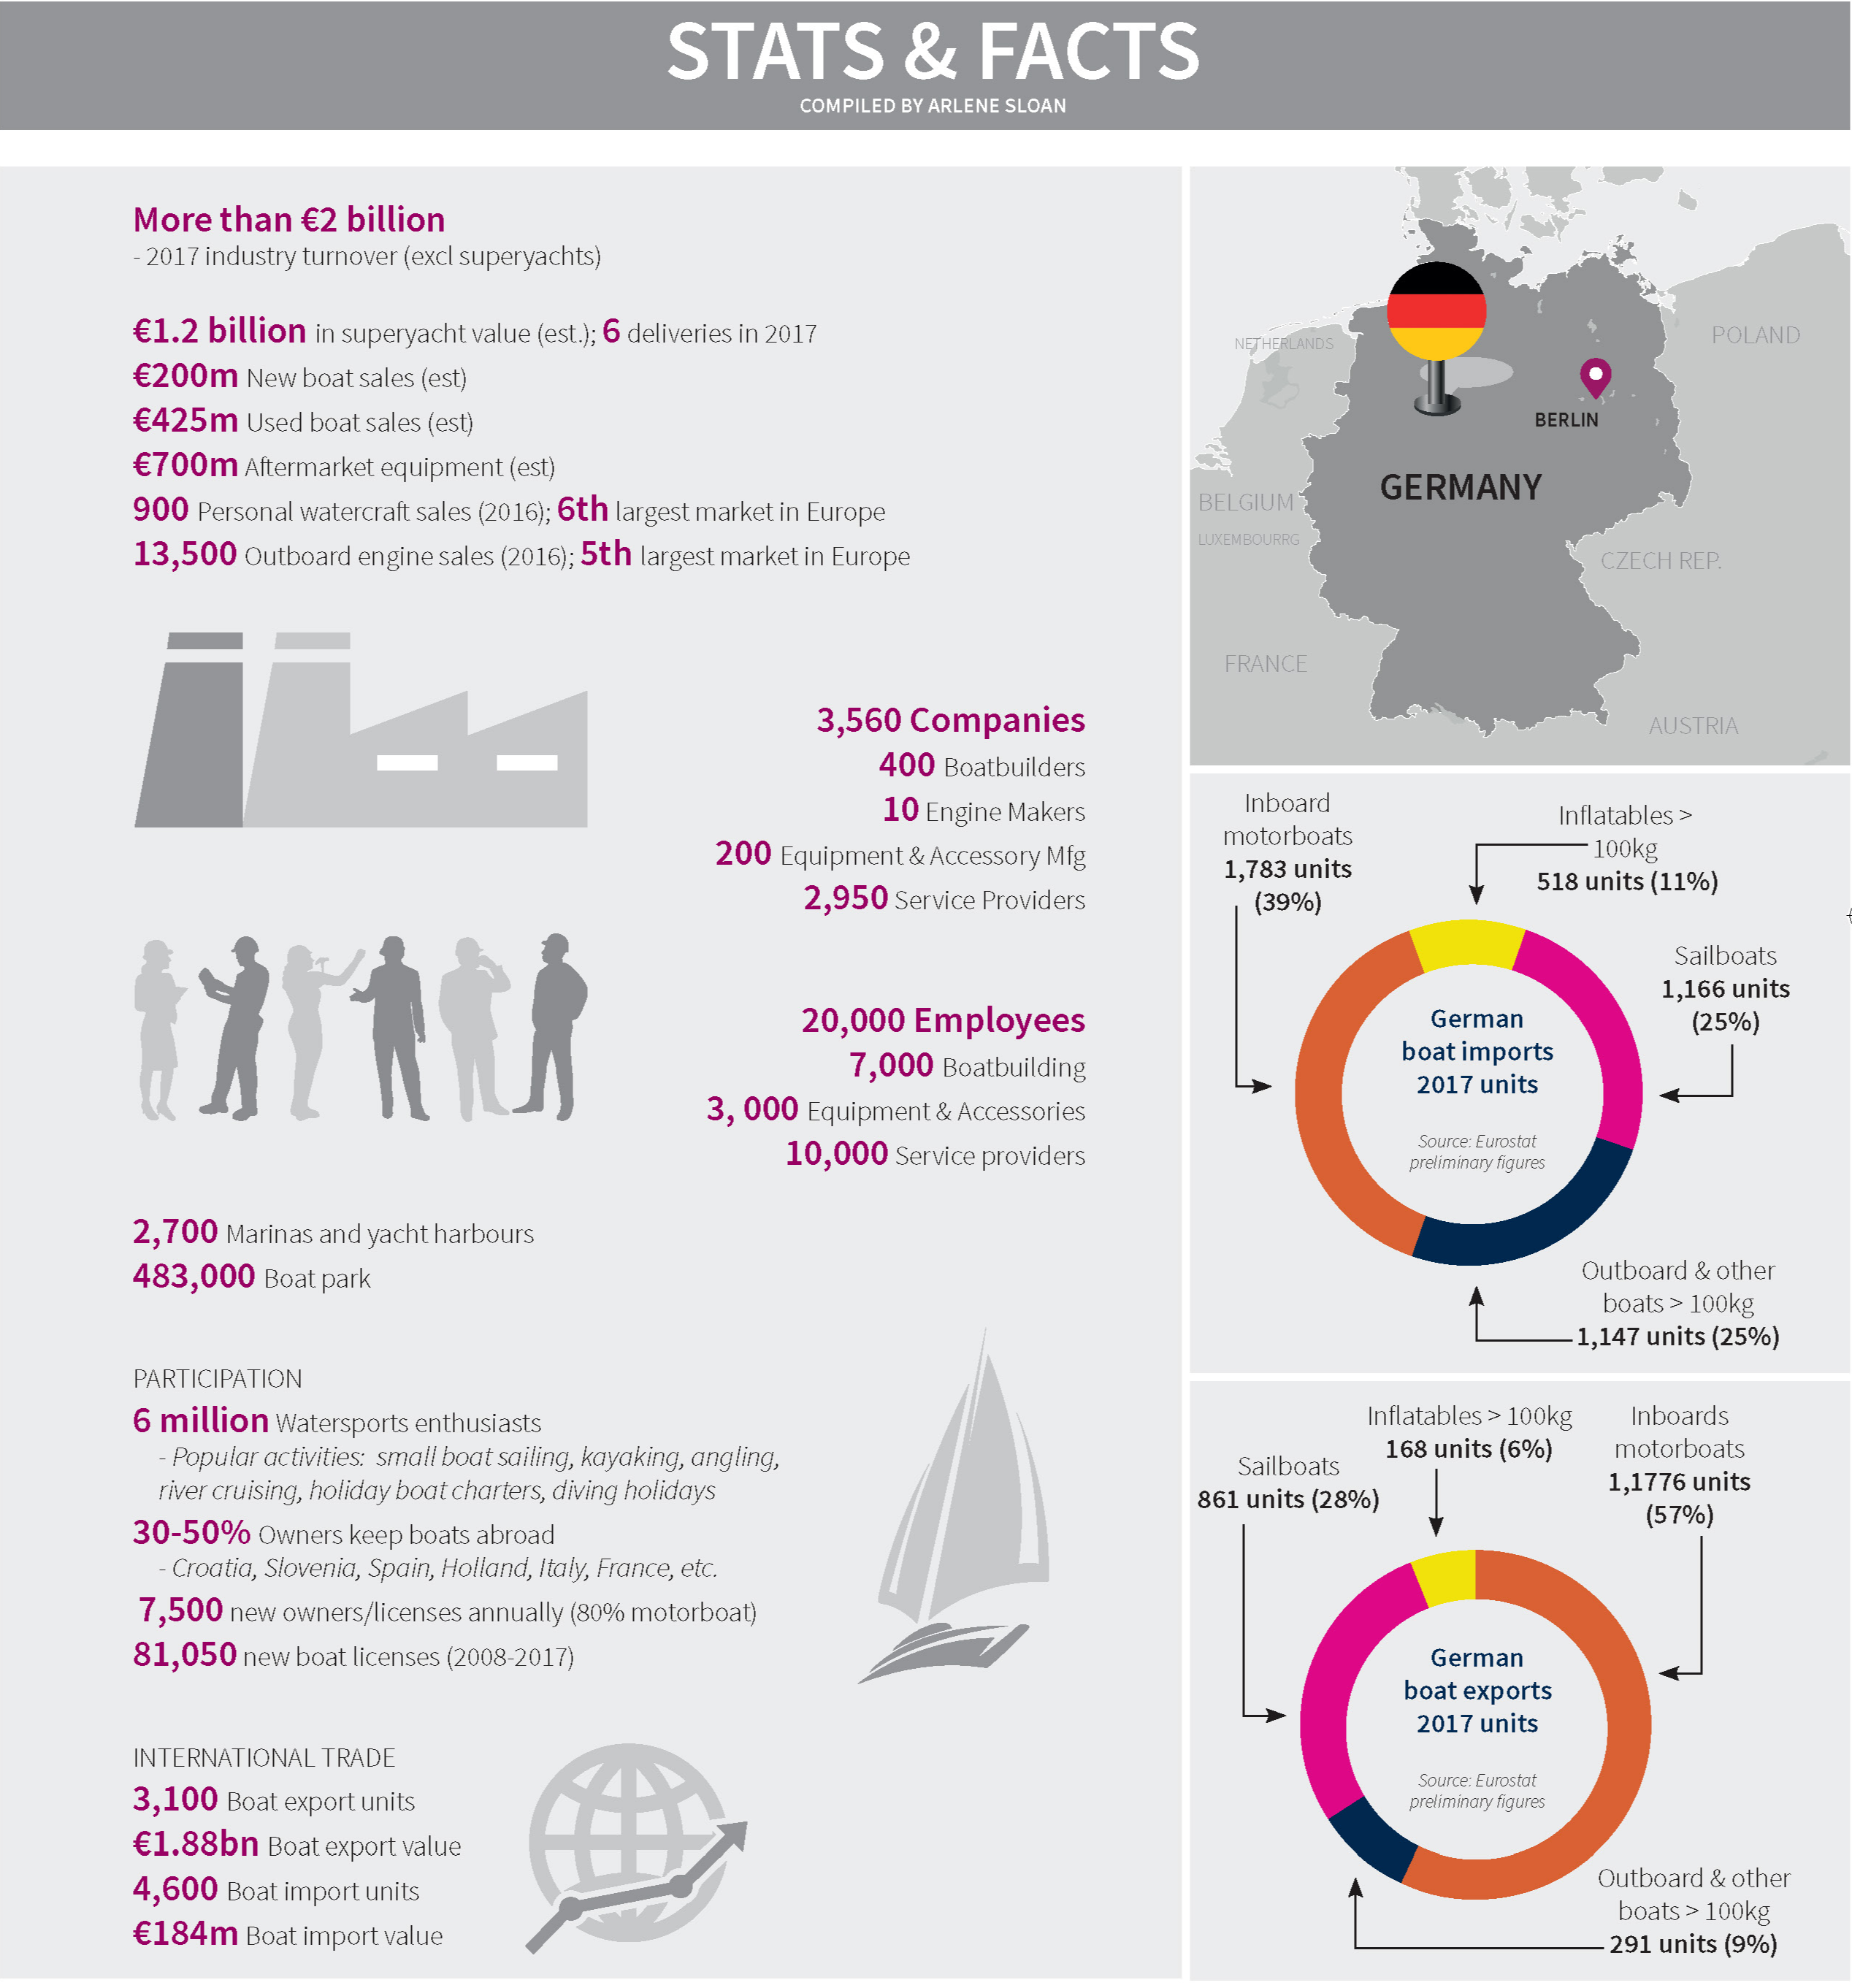 Stats & Facts_Germany